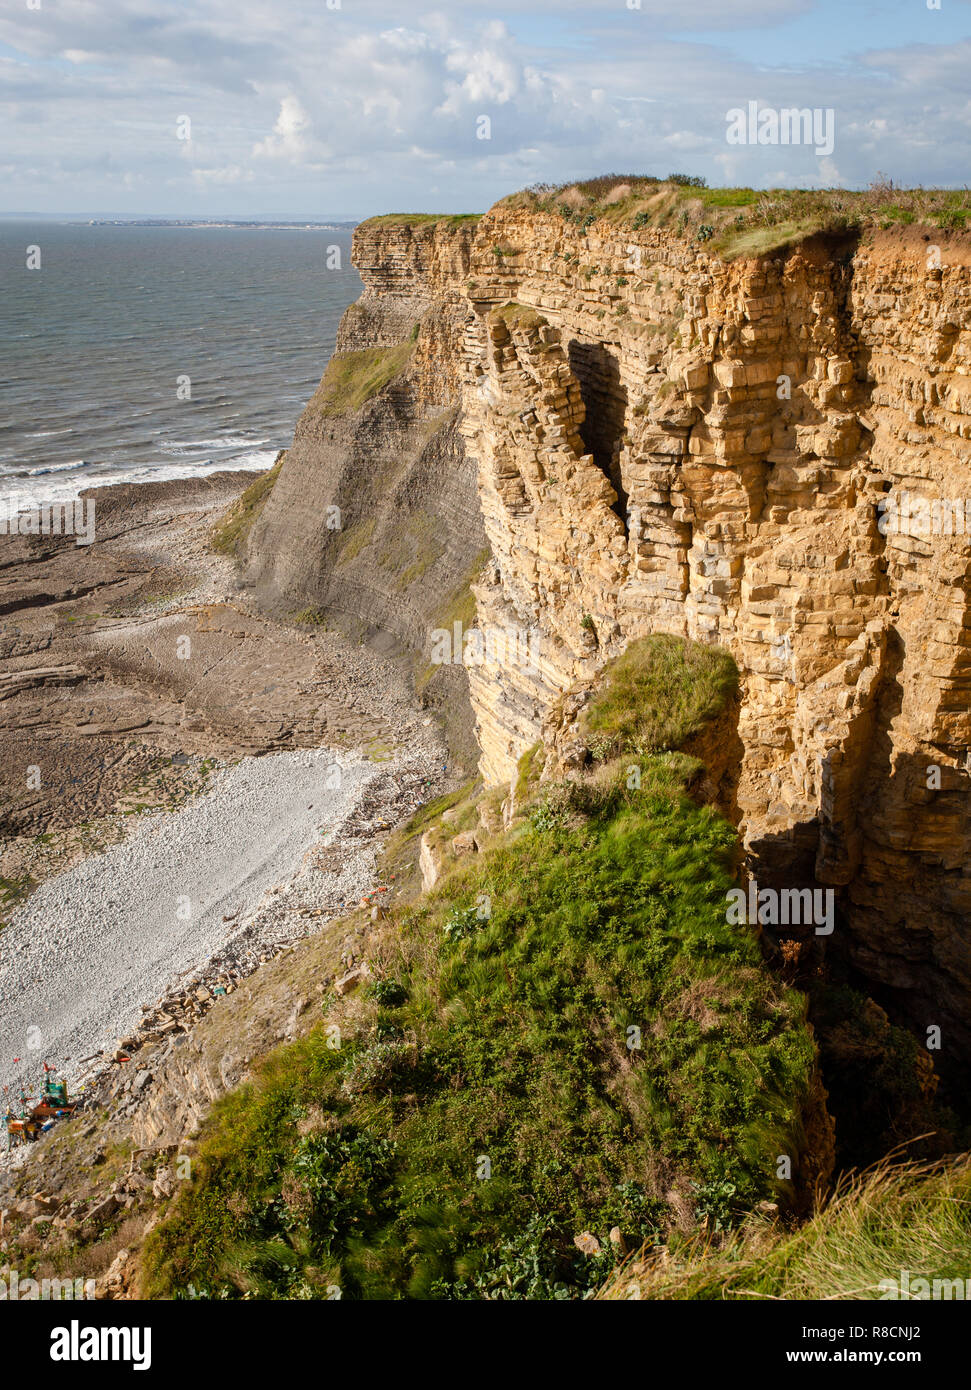 Unstable cliff face about to collapse in Jurassic lias limestone cliffs of the Glamorgan Heritage Coast in South Wales UK - Stock Image